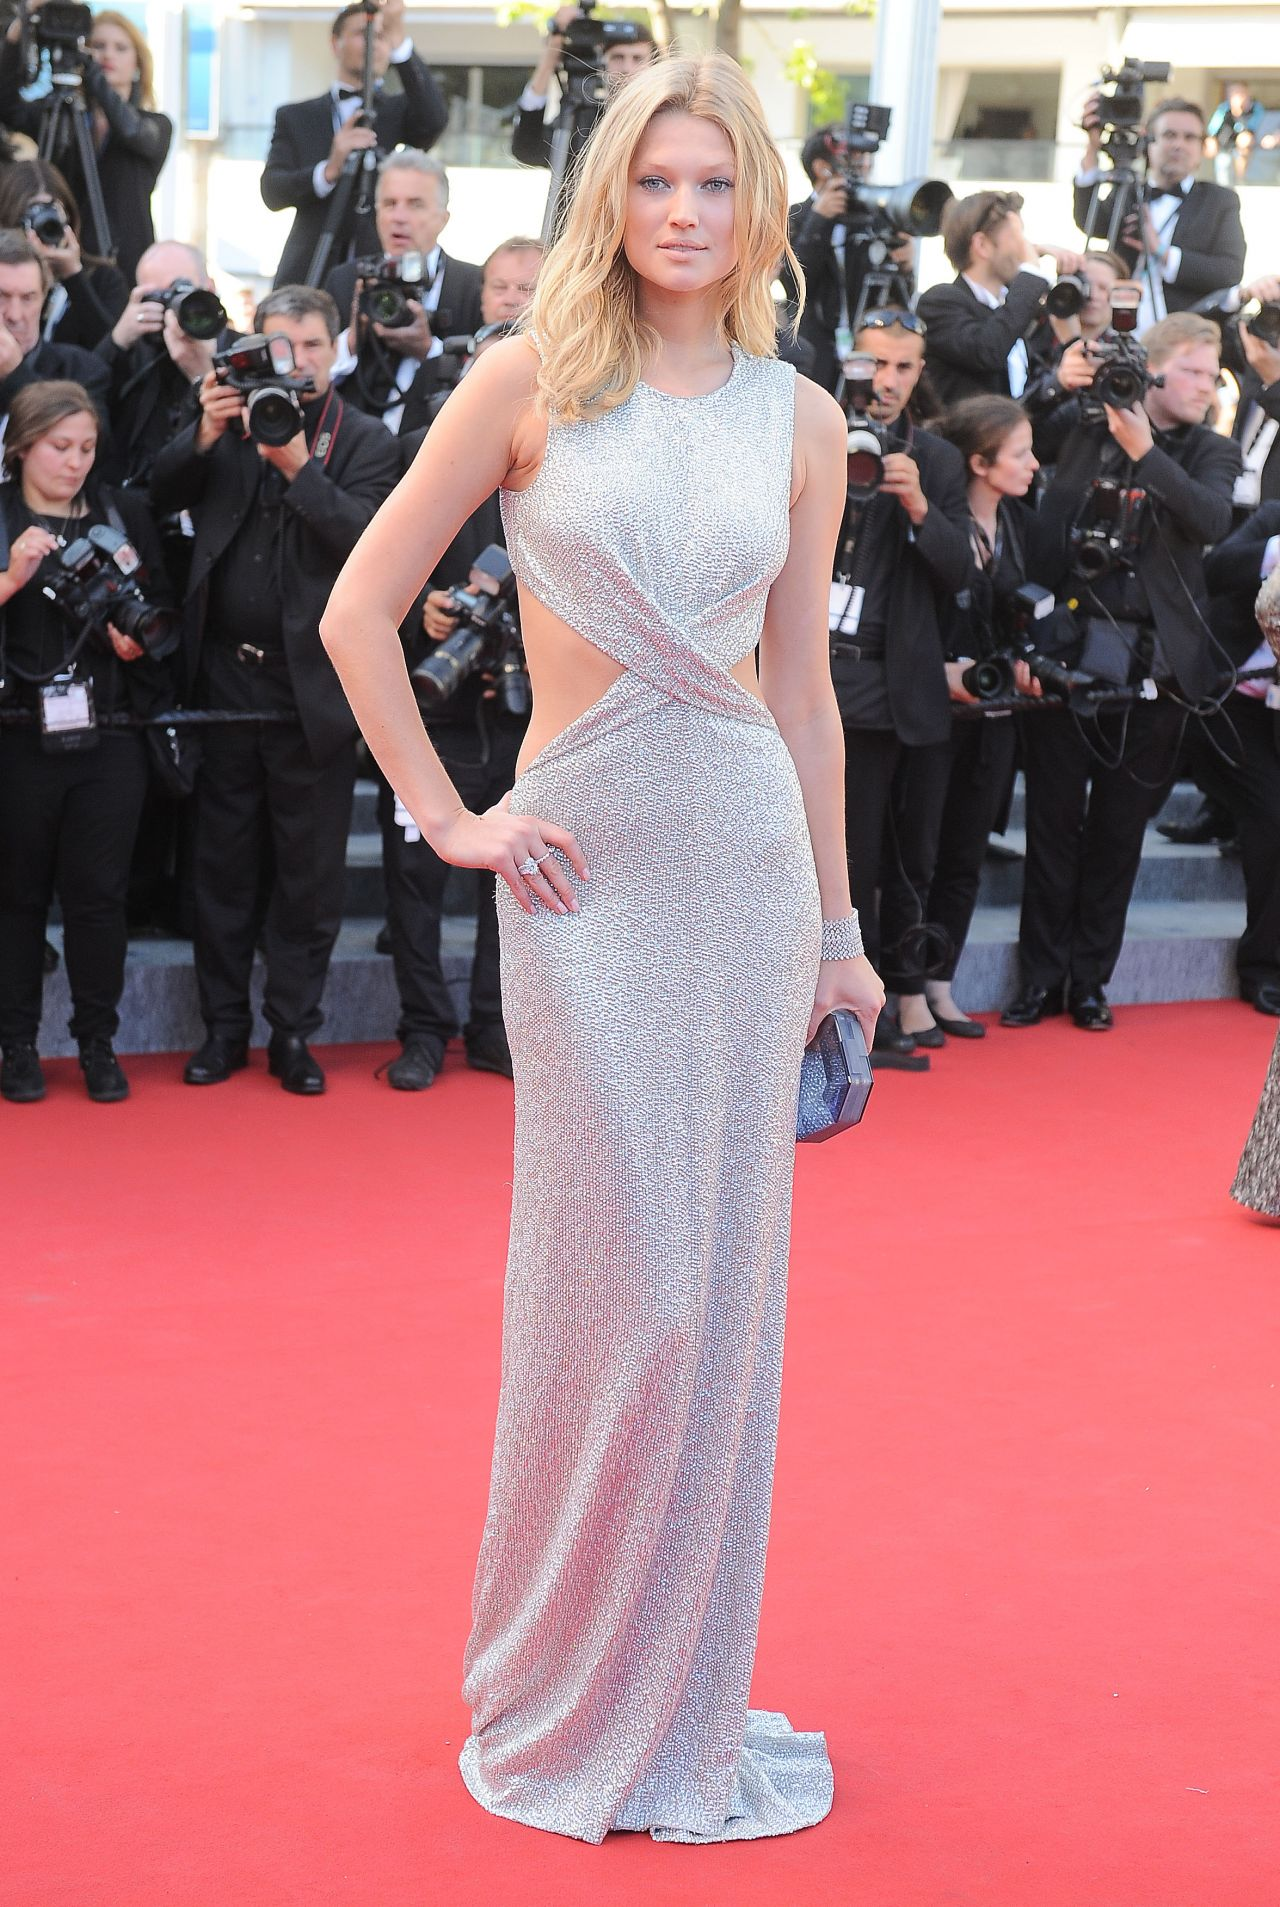 toni-garrn-the-little-prince-premiere-68th-annual-cannes-film-festival_4